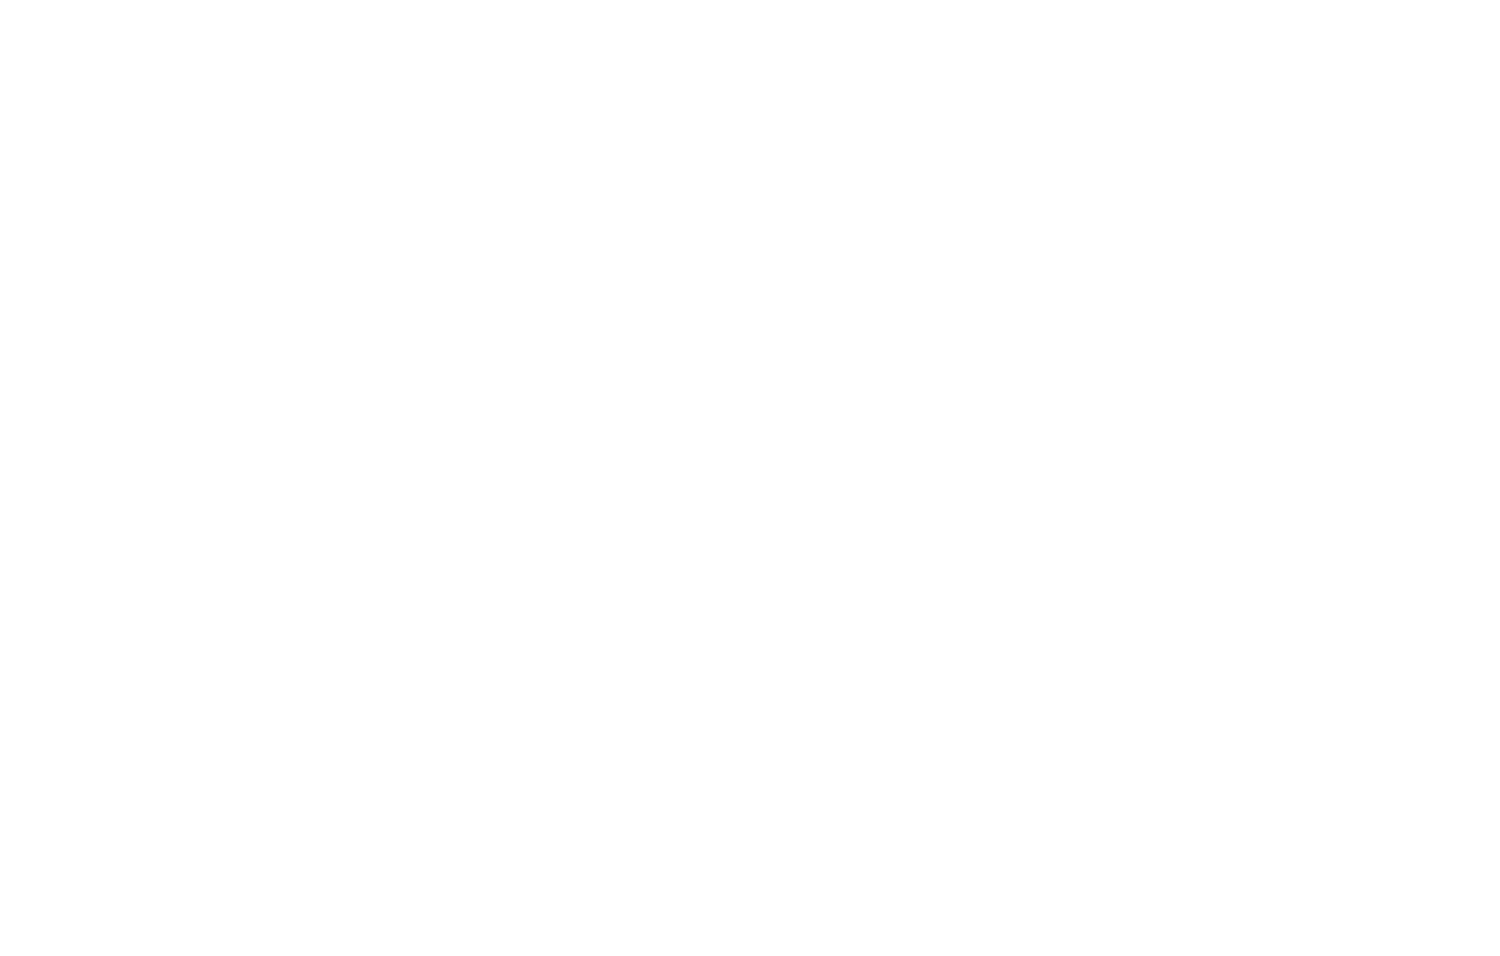 Alex Trevino - Producer and Videographer